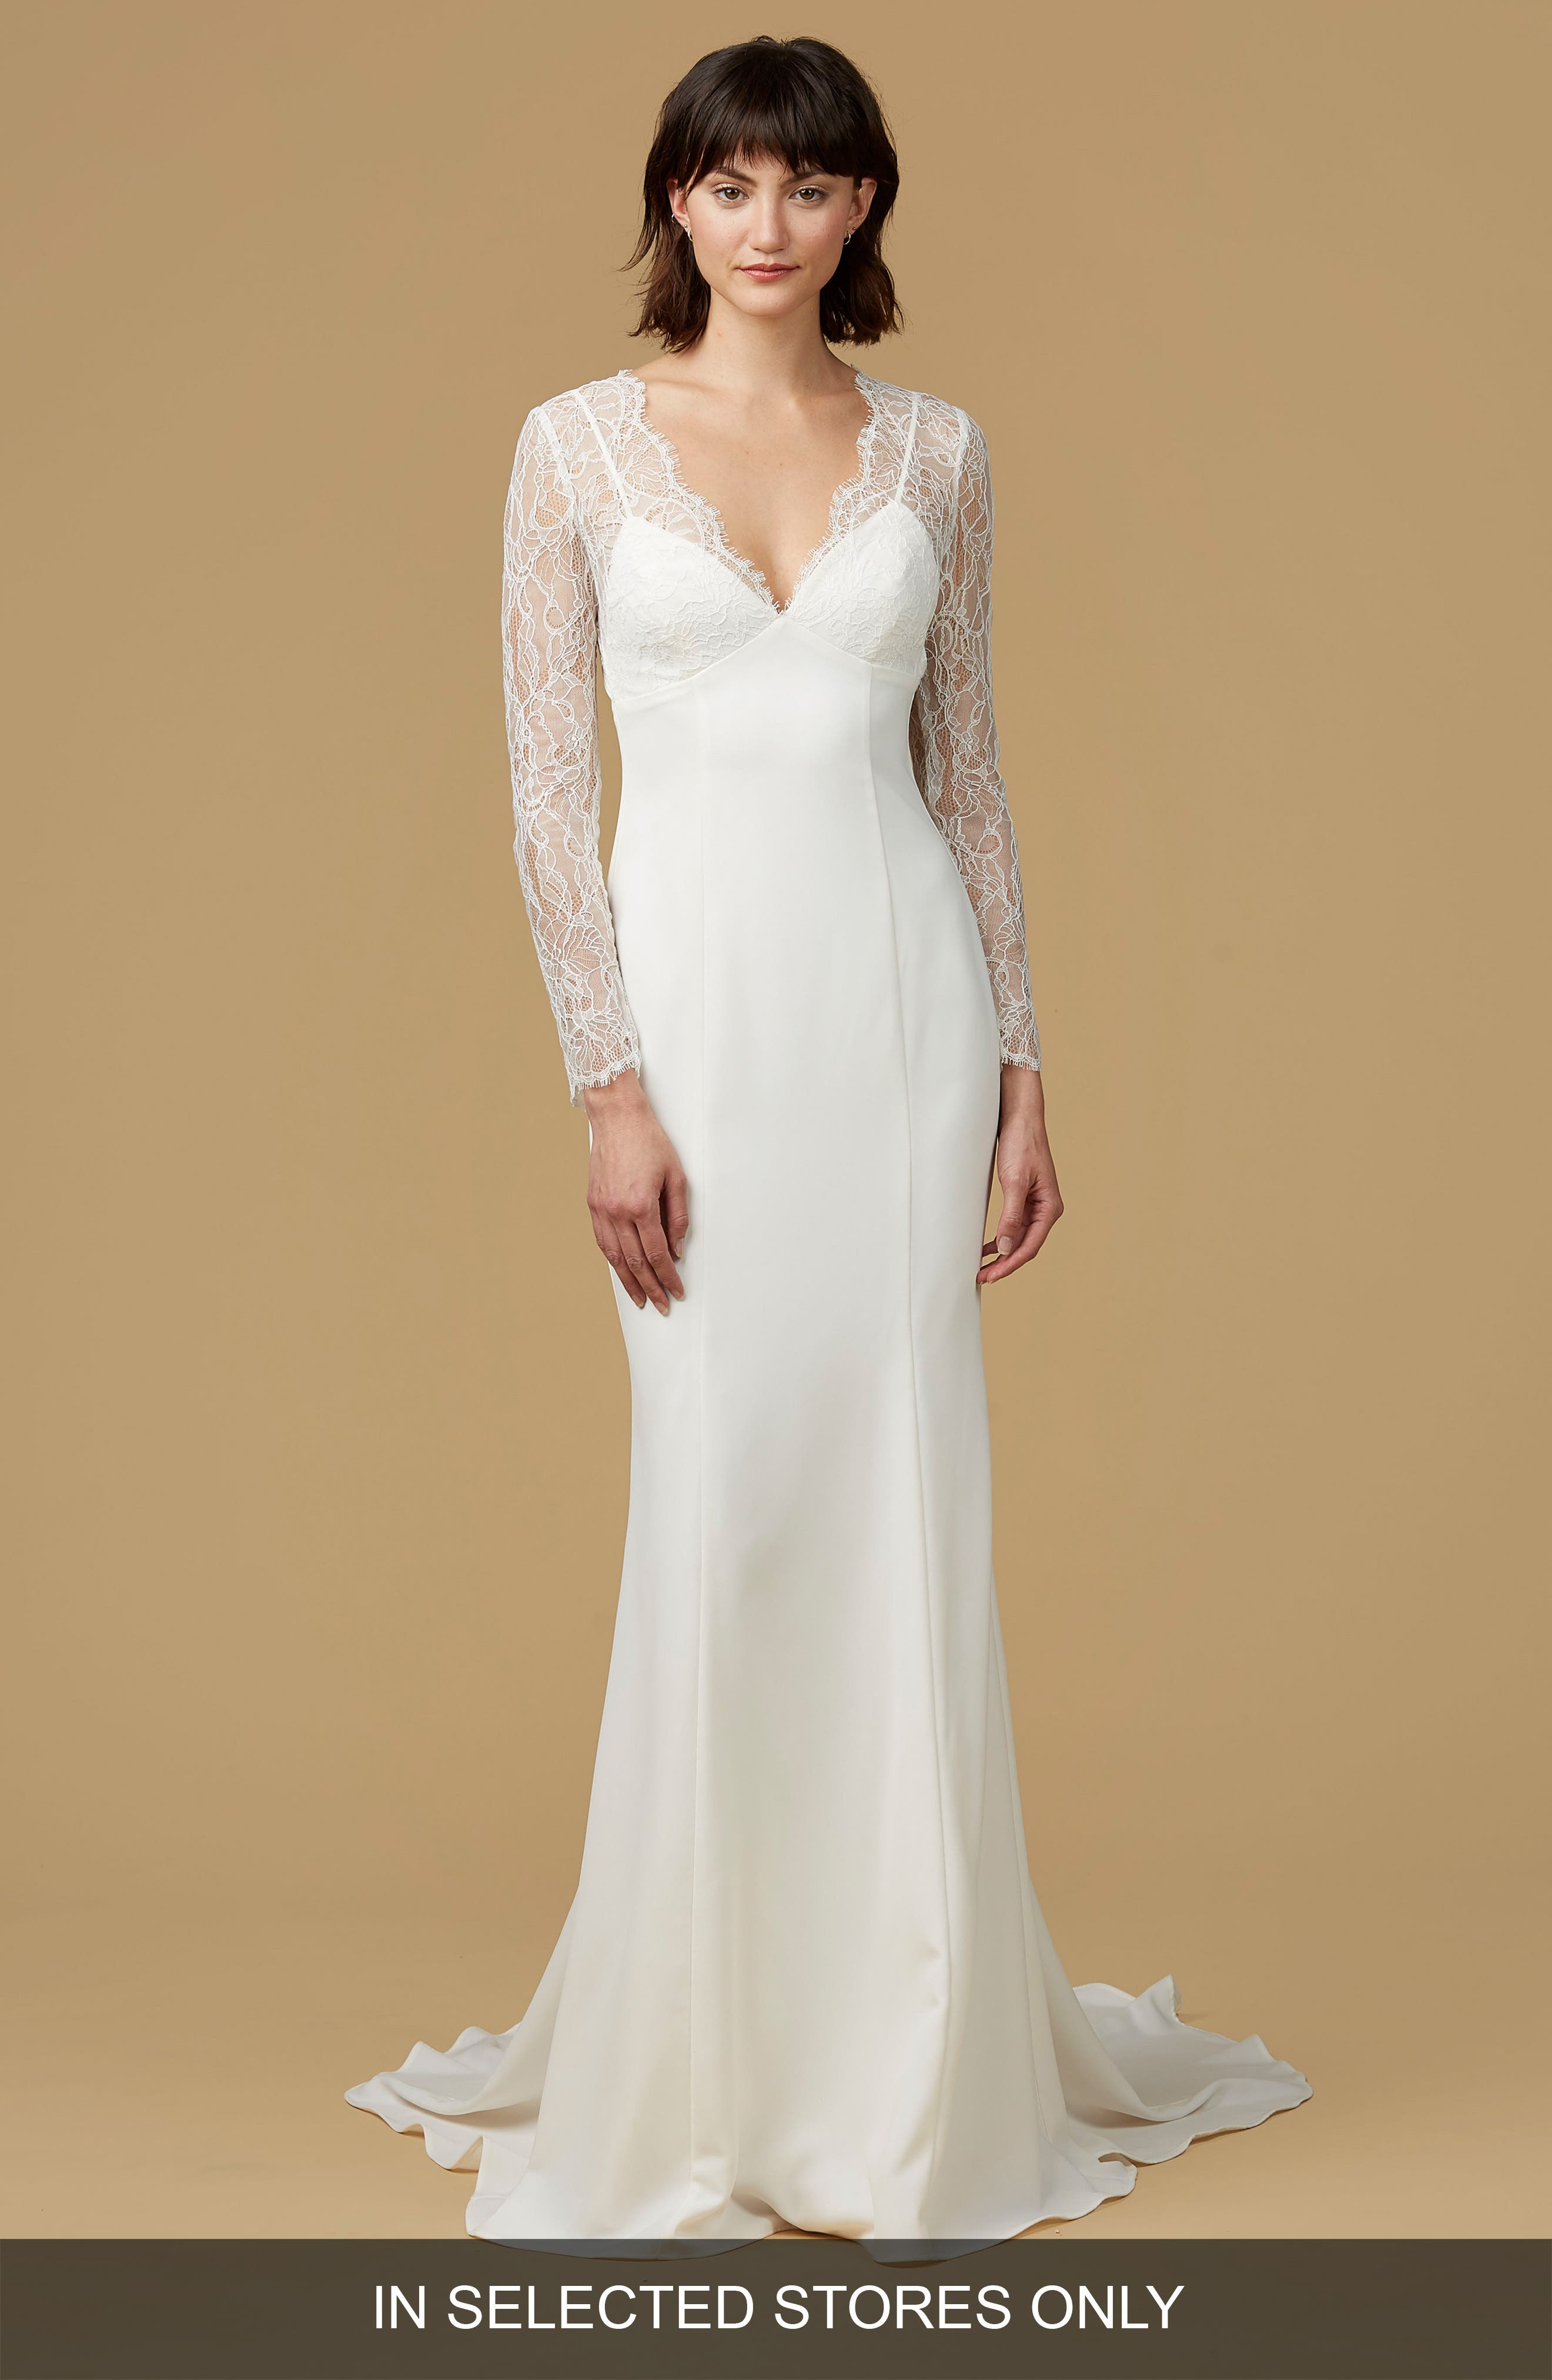 nouvelle AMSALE Easton Chantilly Lace & Crepe Mermaid Gown (In Selected Stores Only)